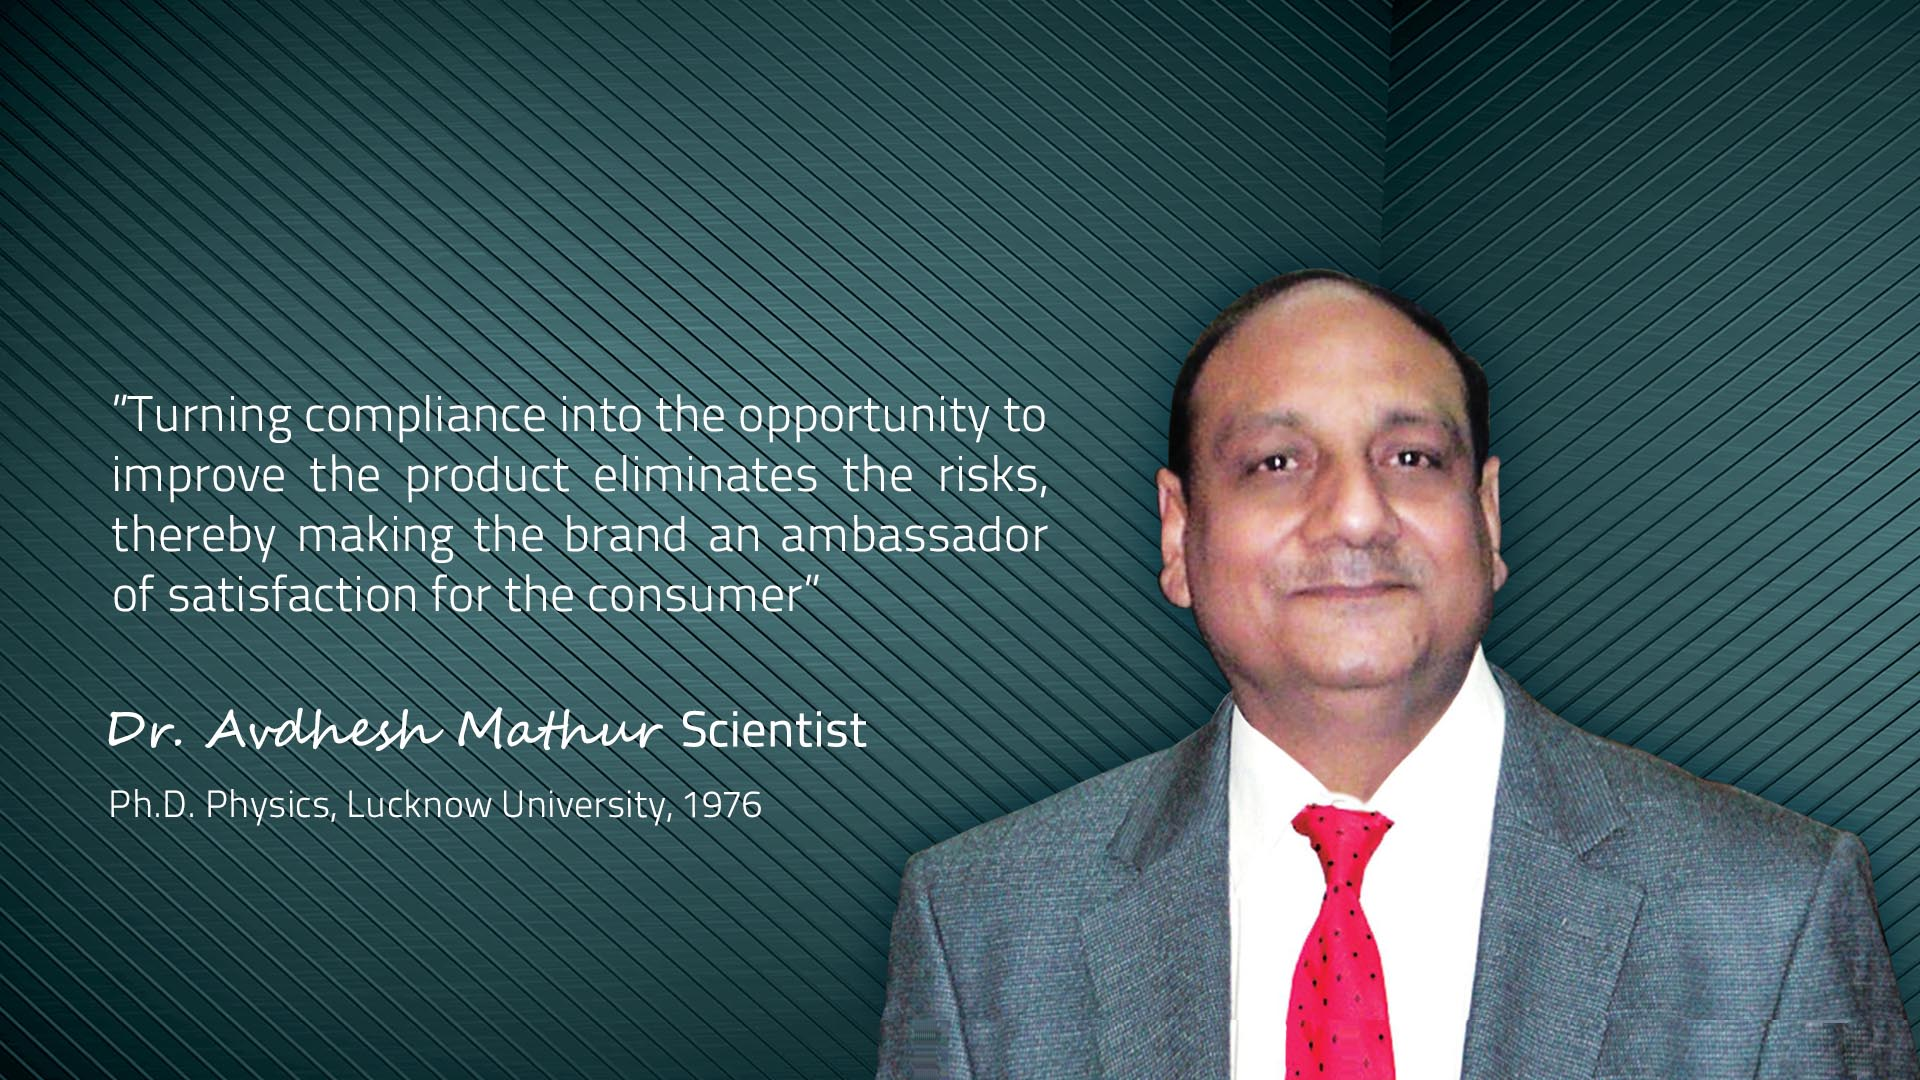 Dr. Avdhesh Mathur Scientist | The Mobile Association